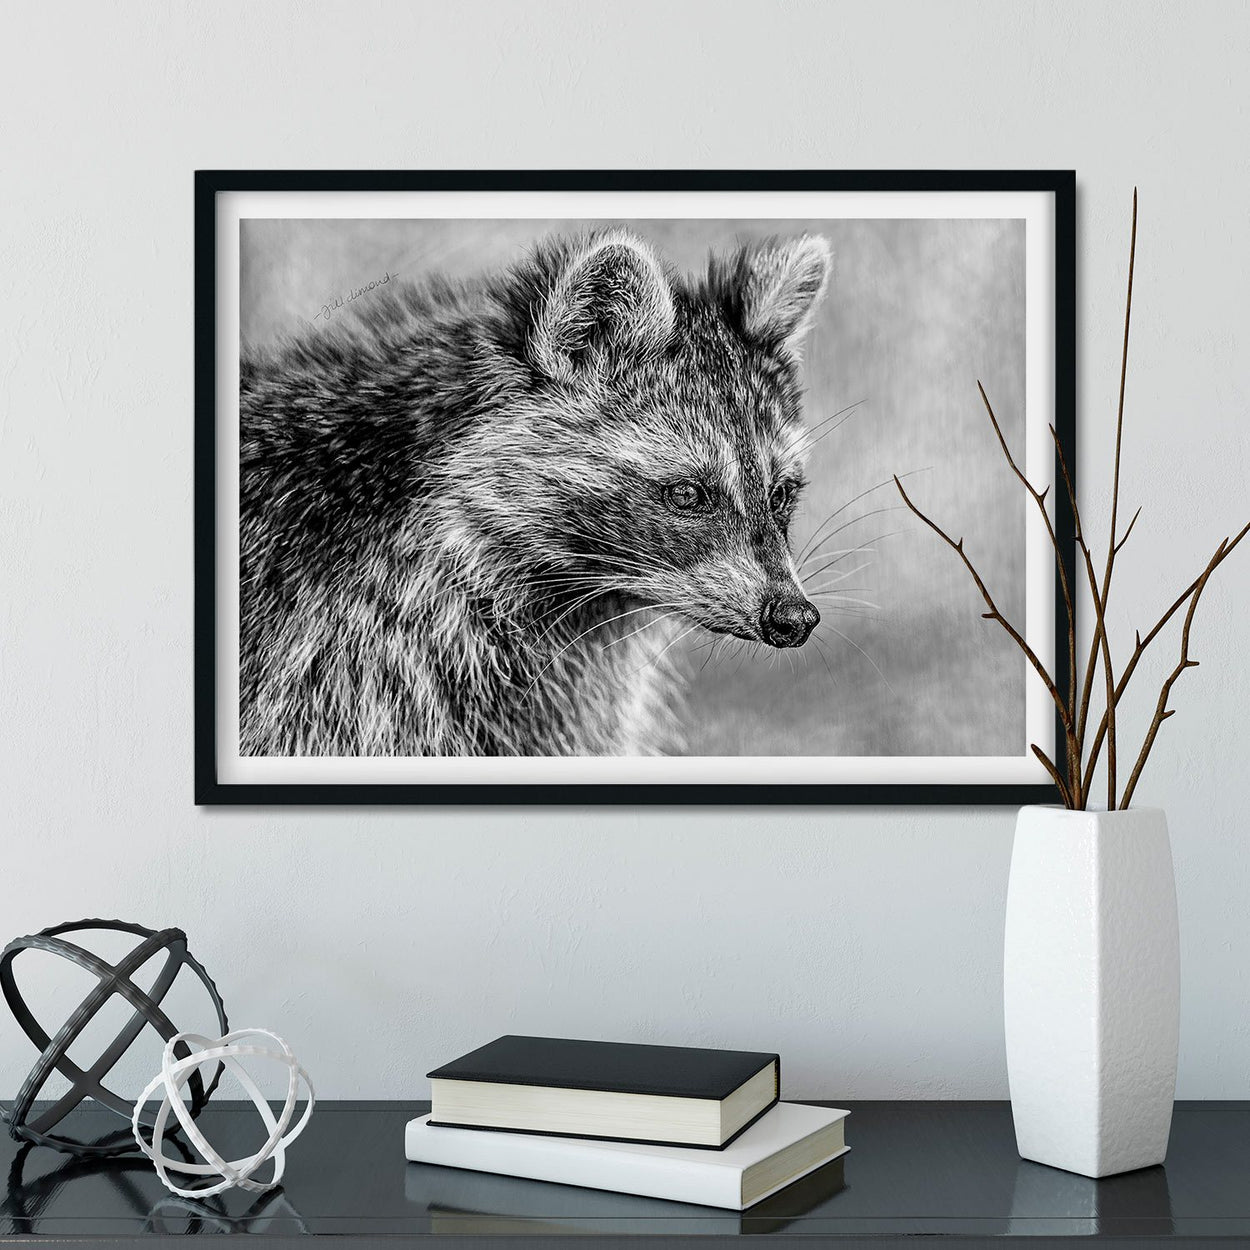 Raccoon Wall Art Framed - The Thriving Wild